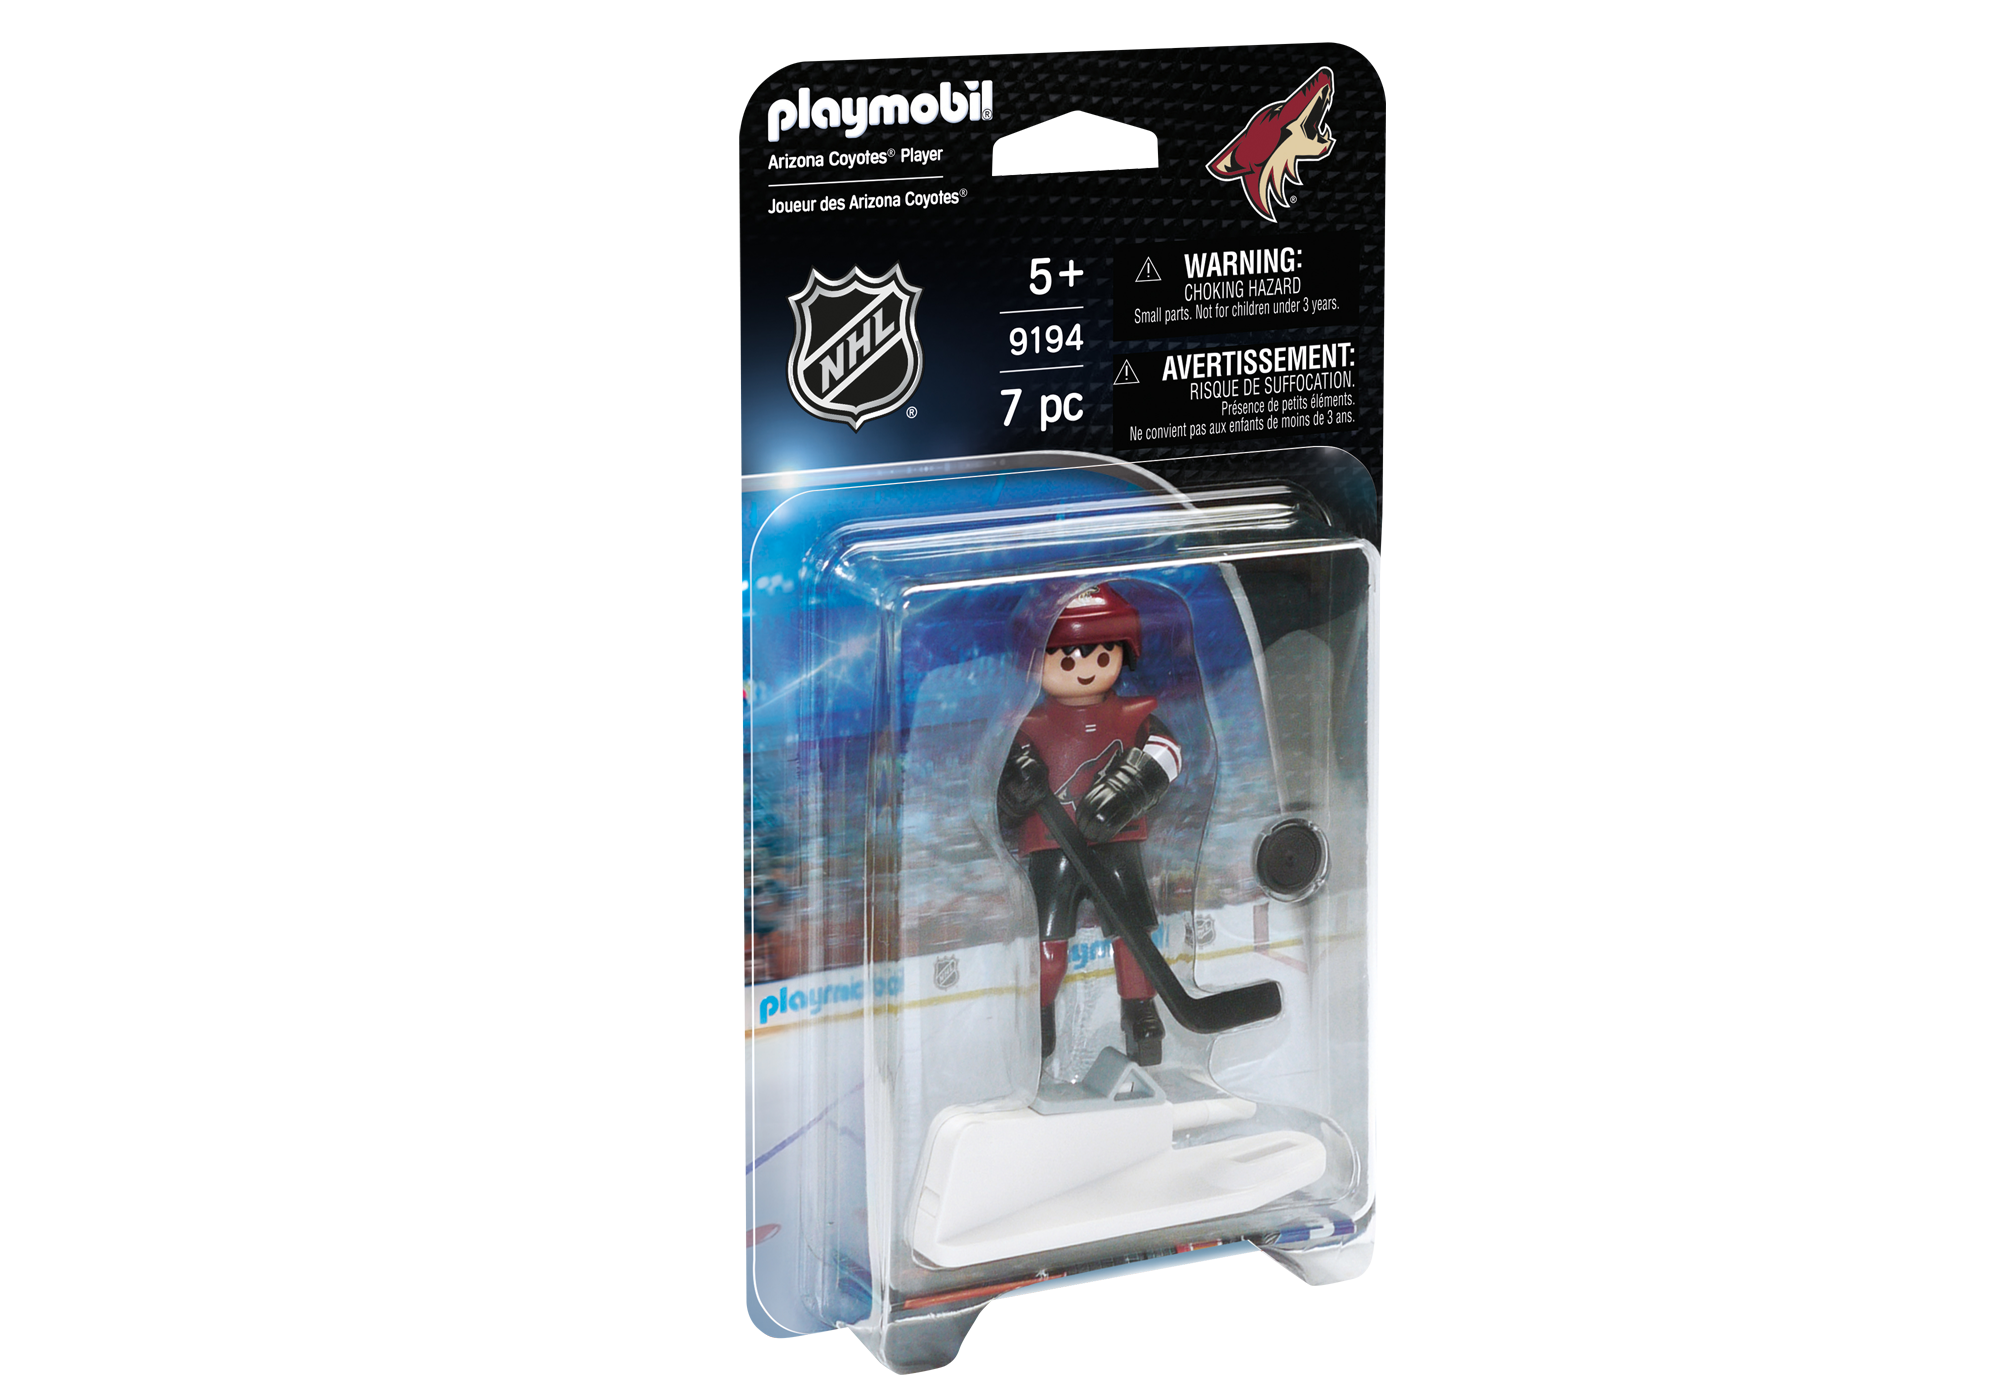 http://media.playmobil.com/i/playmobil/9194_product_box_front